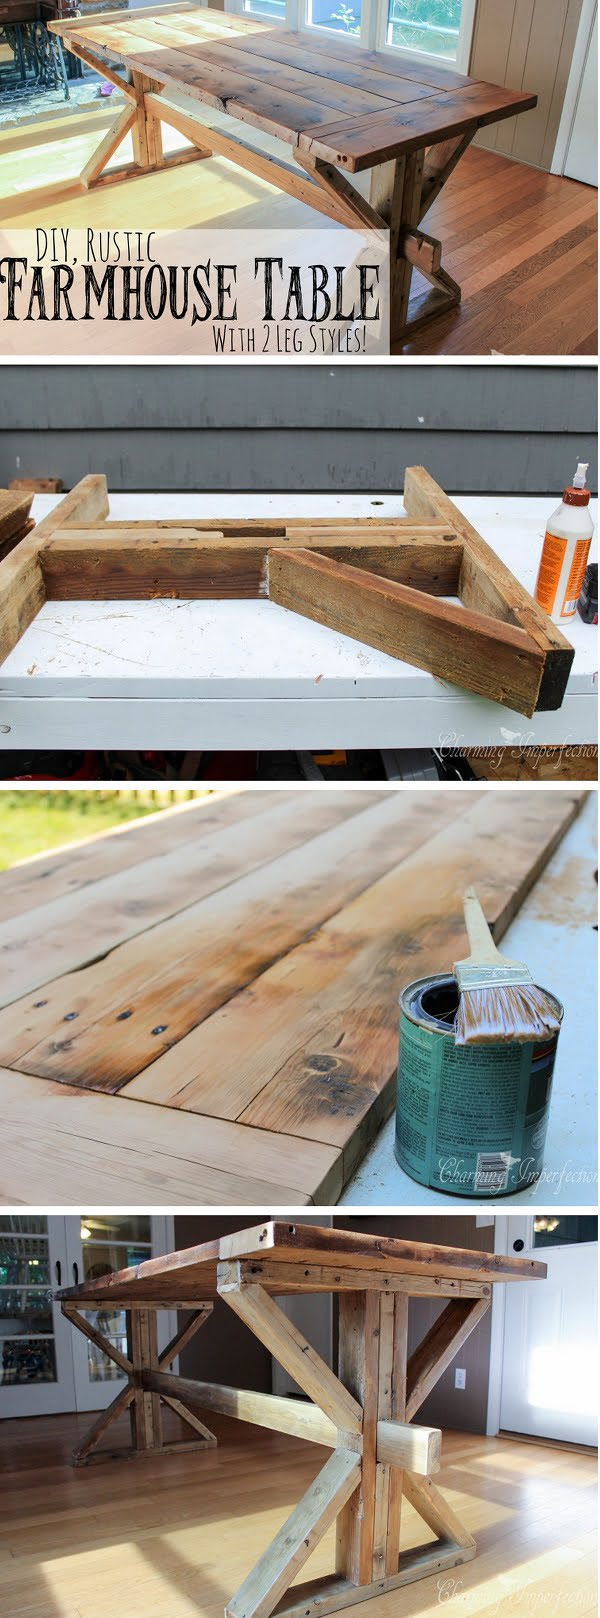 Check out the tutorial how to build a DIY rustic farmhouse dining table